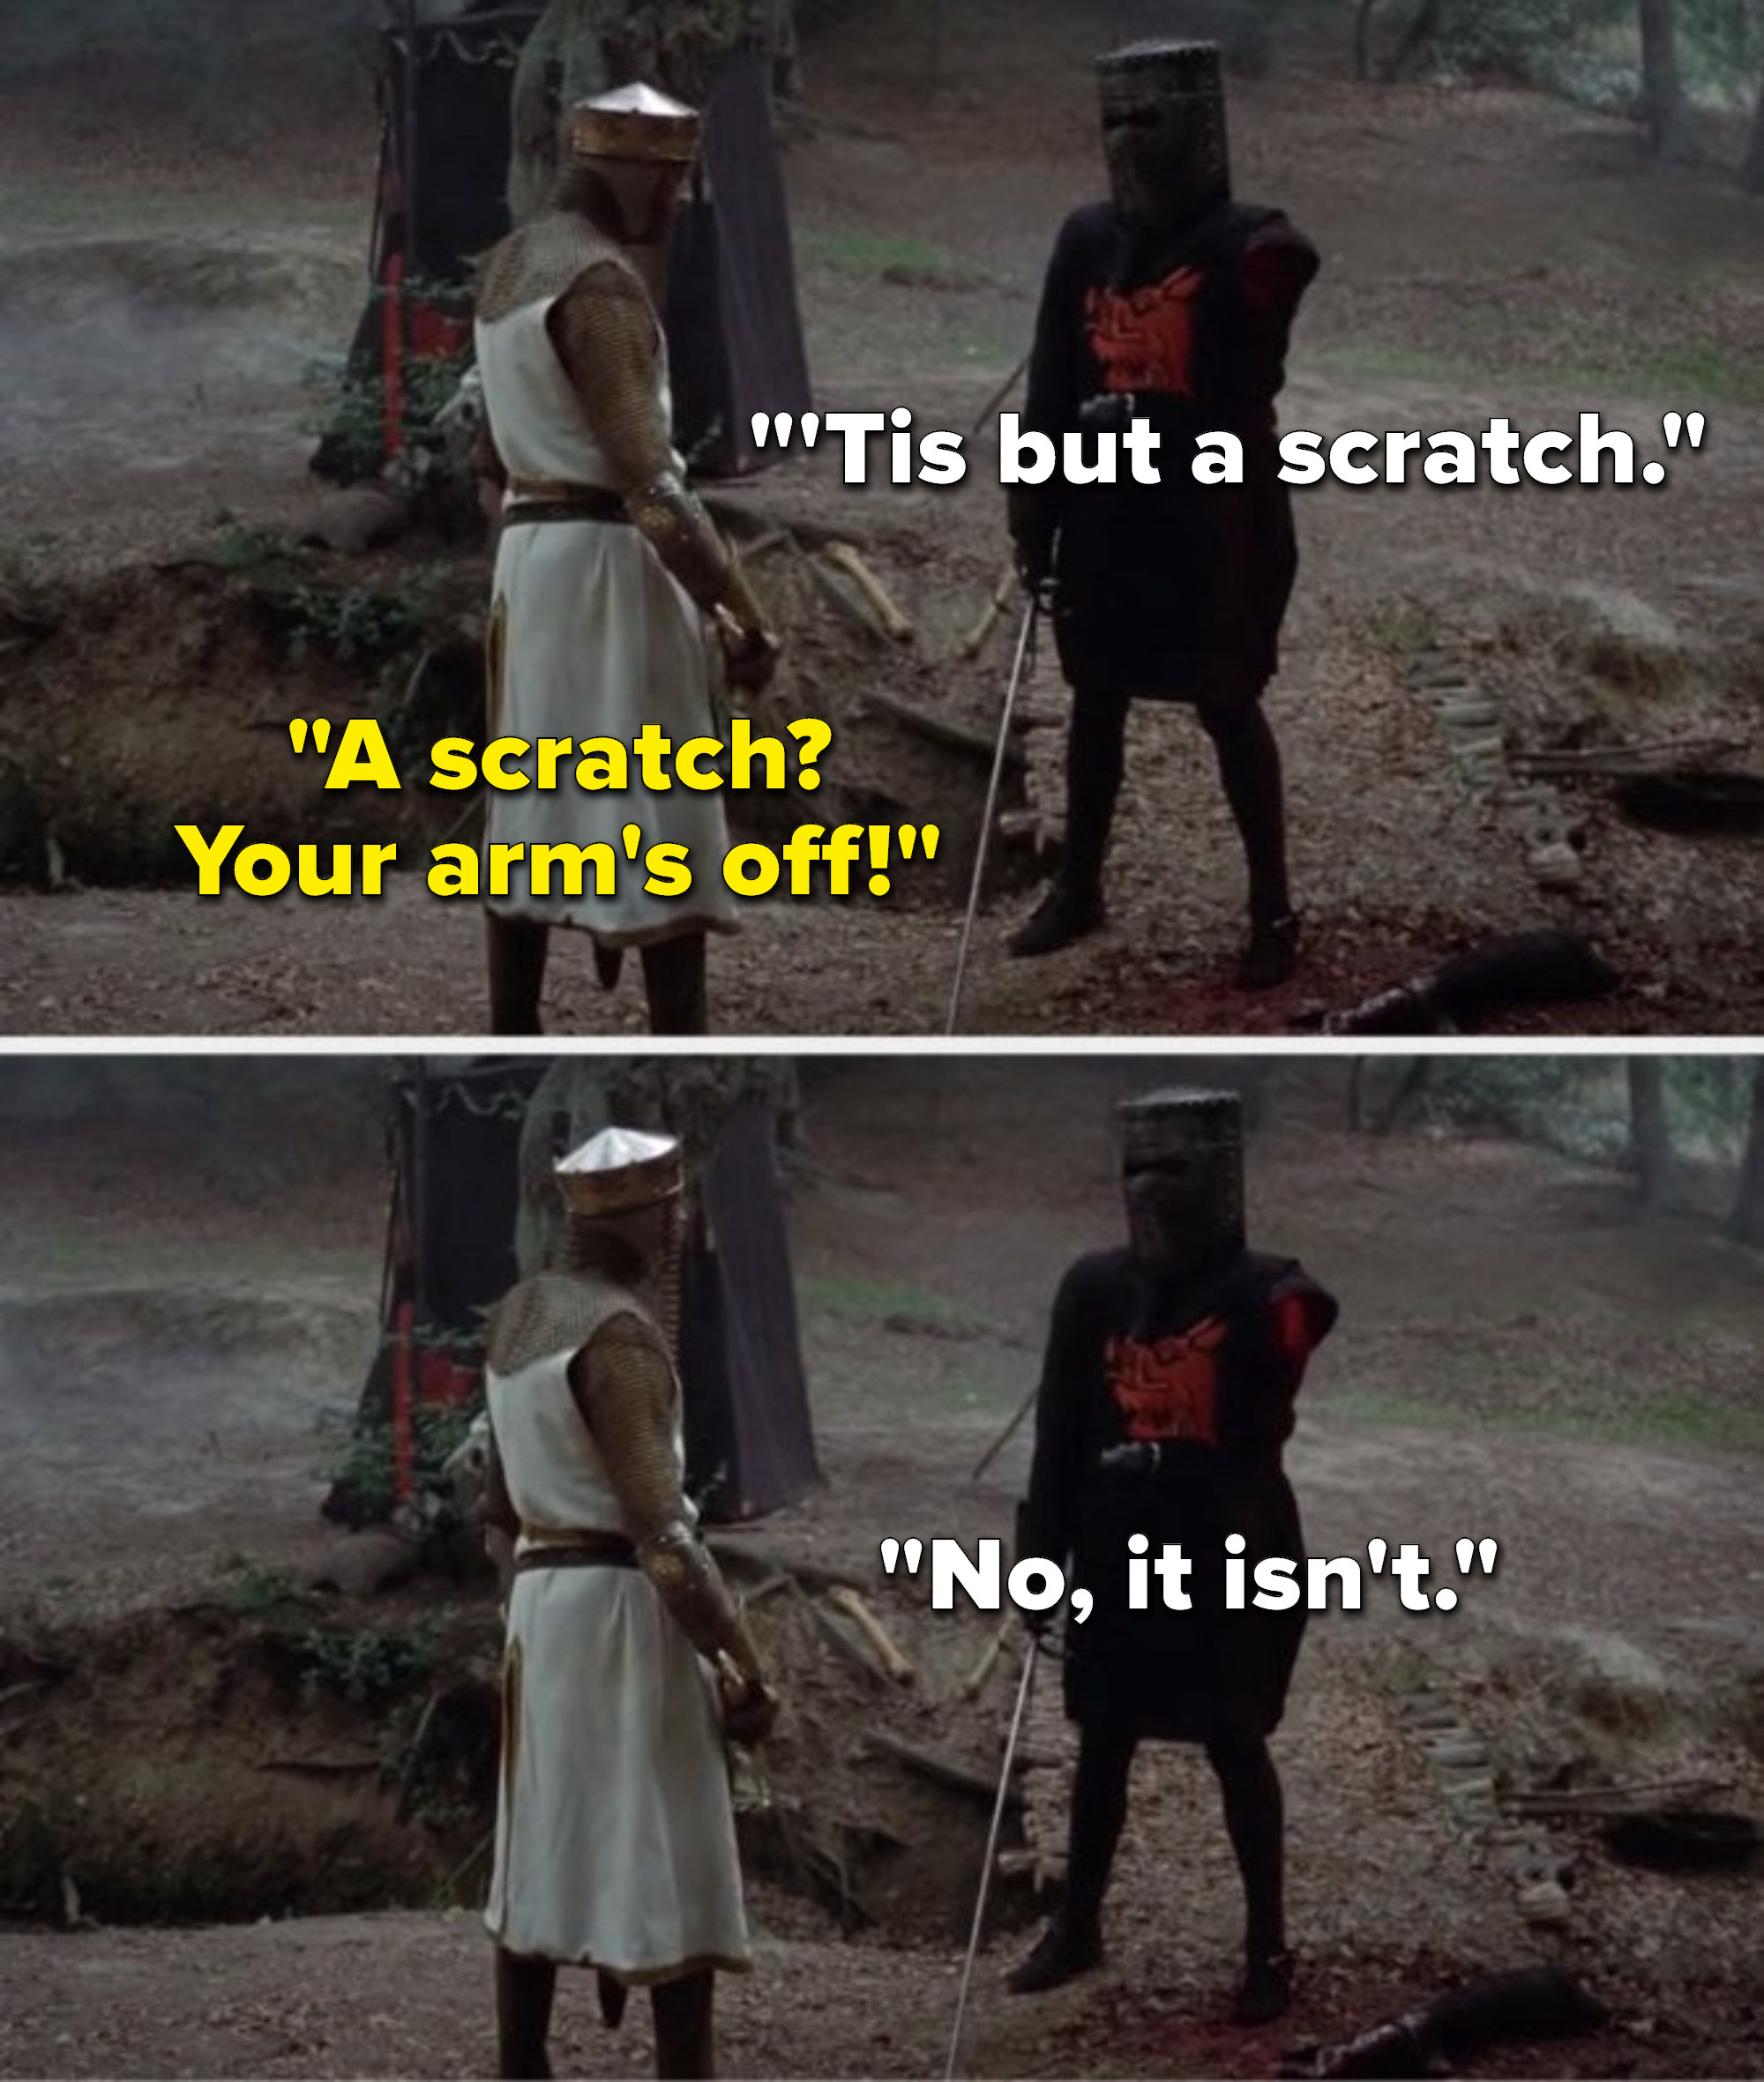 """With his arm cut off and on the ground, the Black Knight says, """"'Tis but a scratch,"""" King Arthur says, """"A scratch, your arm's off,"""" and the Black Knight says, """"No, it isn't"""""""